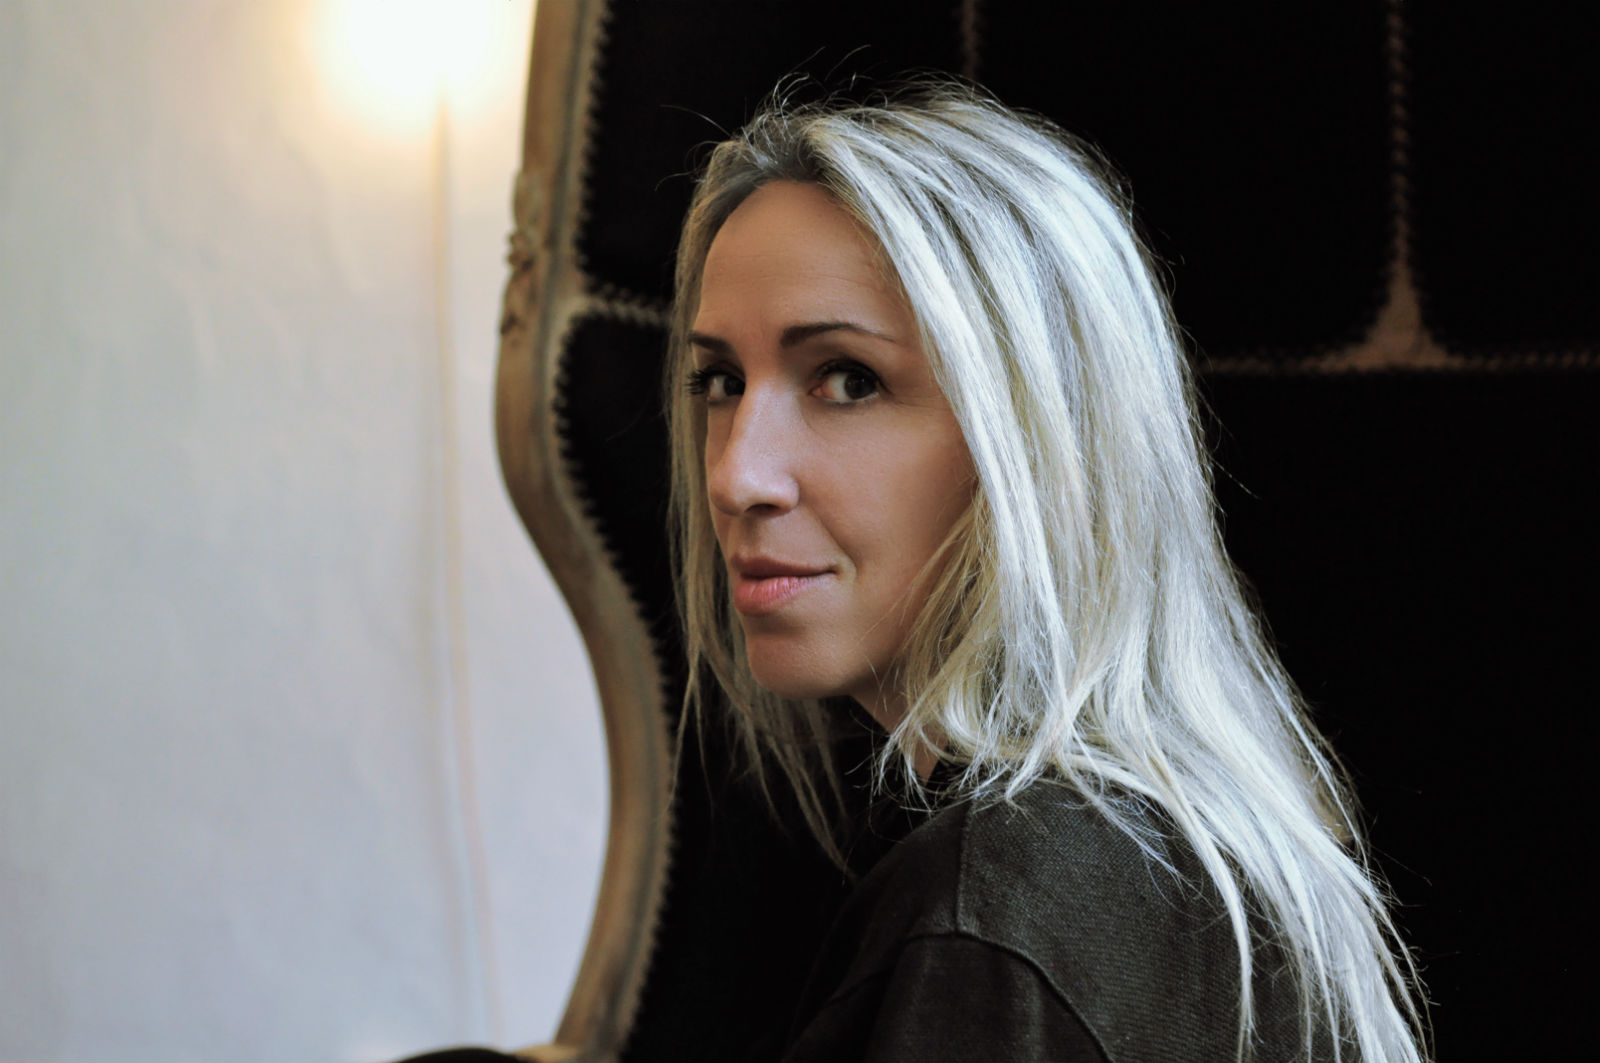 HiP Paris blog. Melissa Unger, creator of Seymour Projects and SEYMOUR+.